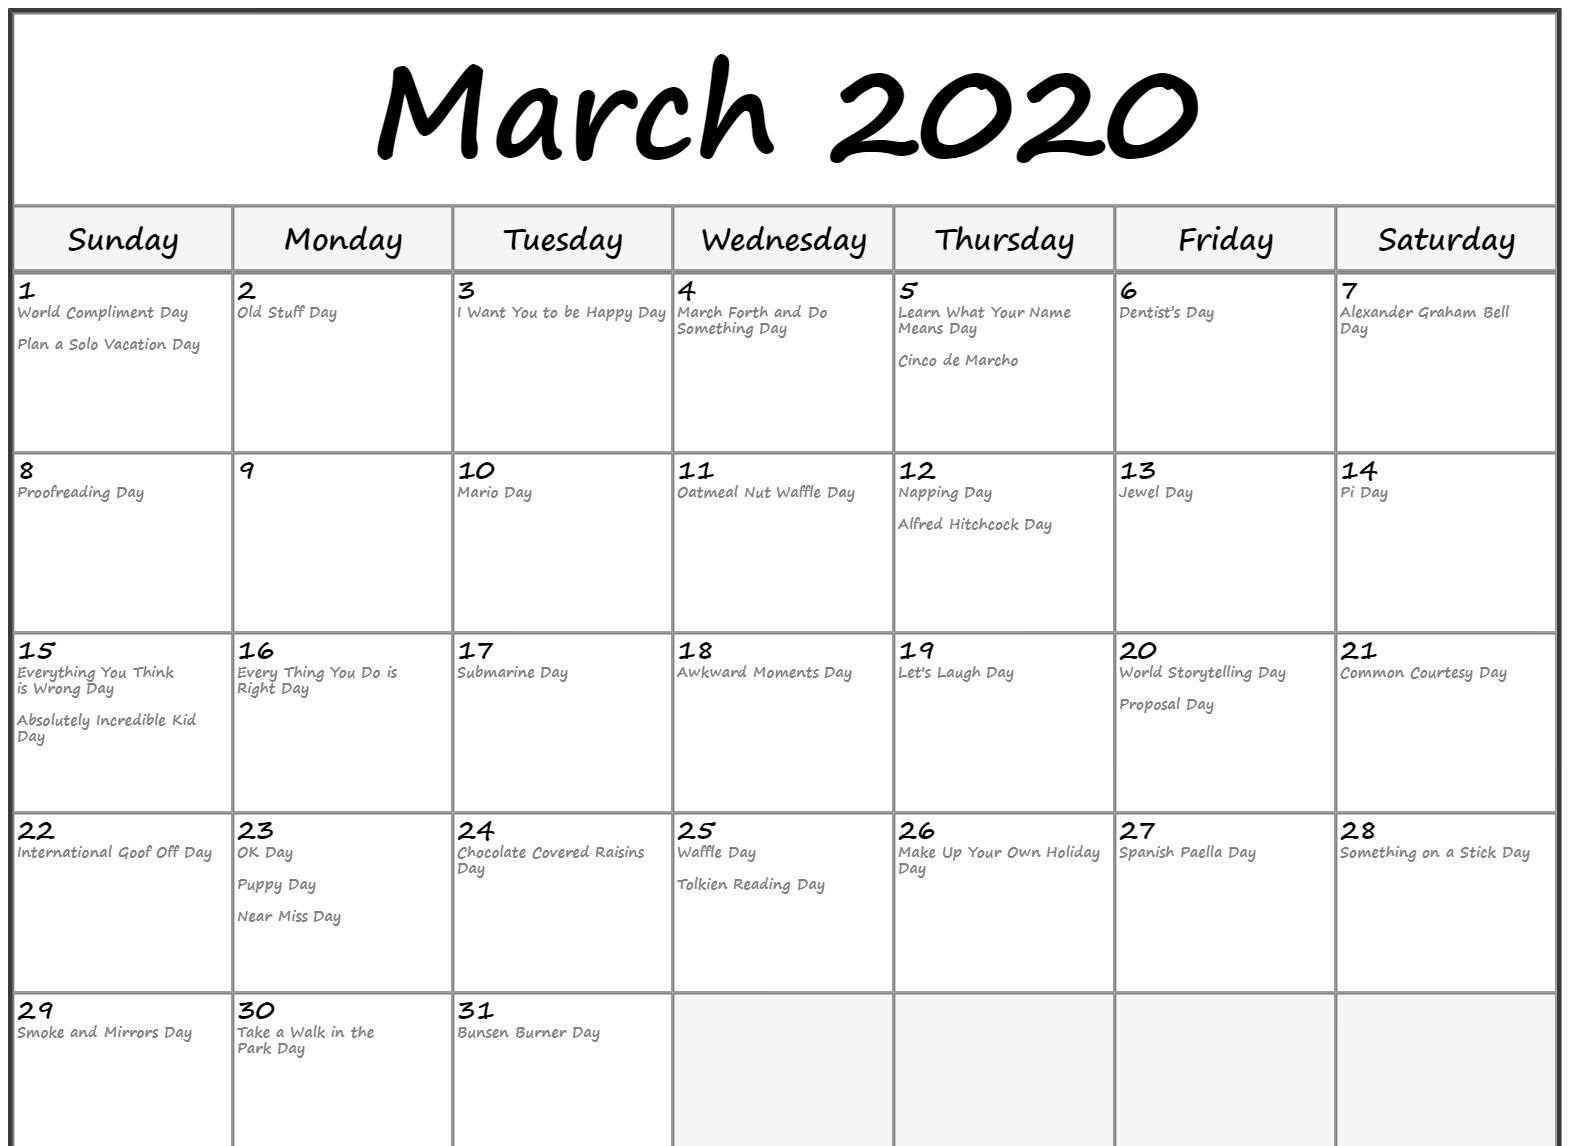 Free Printable March Holidays 2020 Calendar In Us, Uk Perky Printable Calendar 2020 Of Ridiculous Holidays